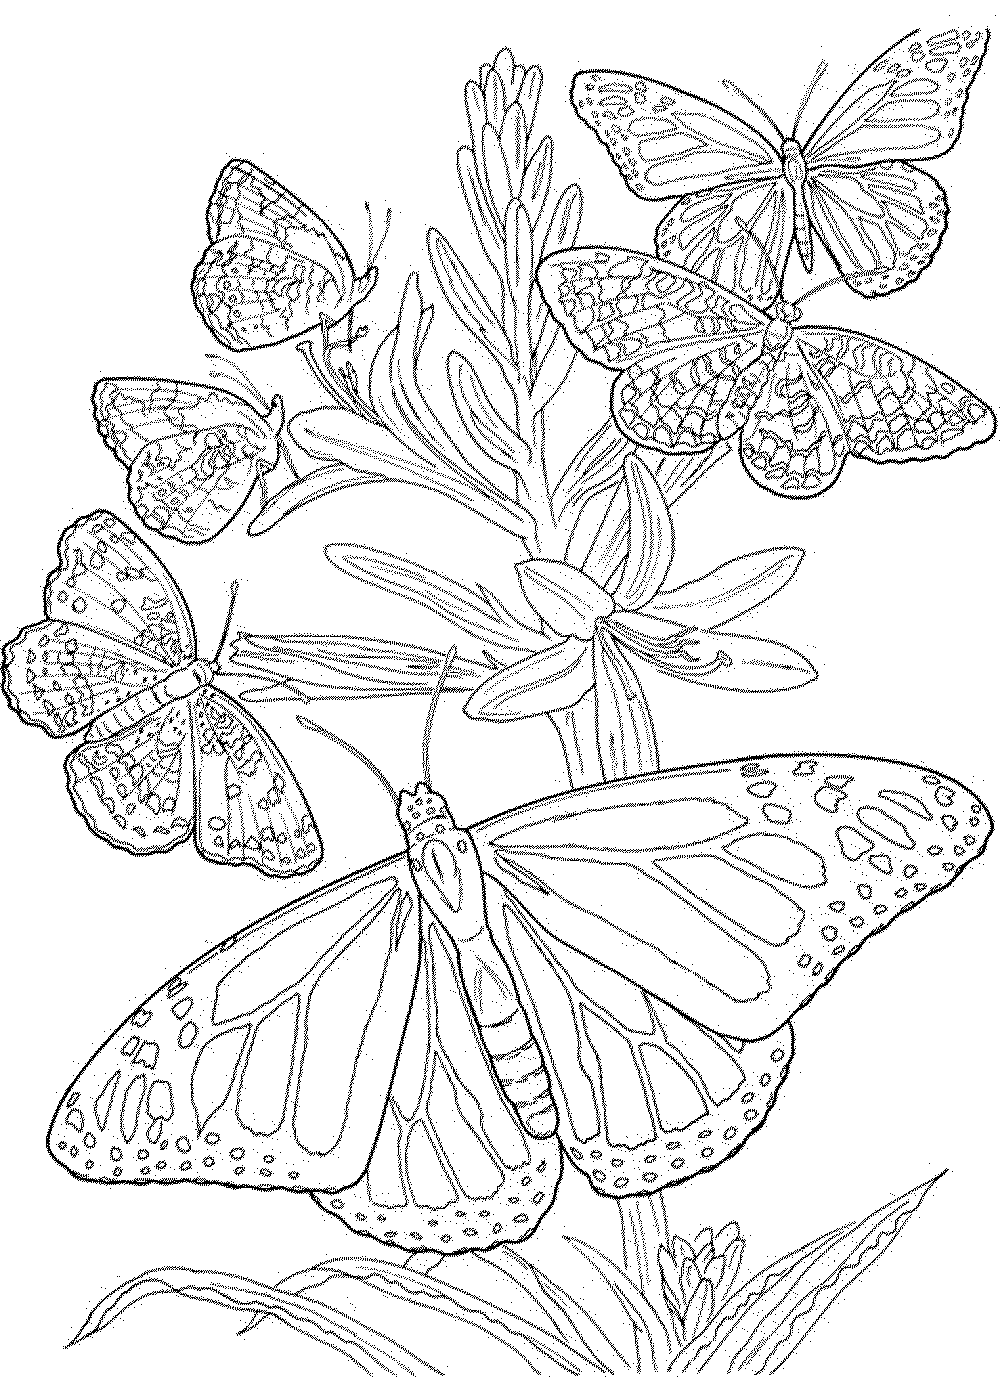 Print coloring pages adult at animal coloring collections